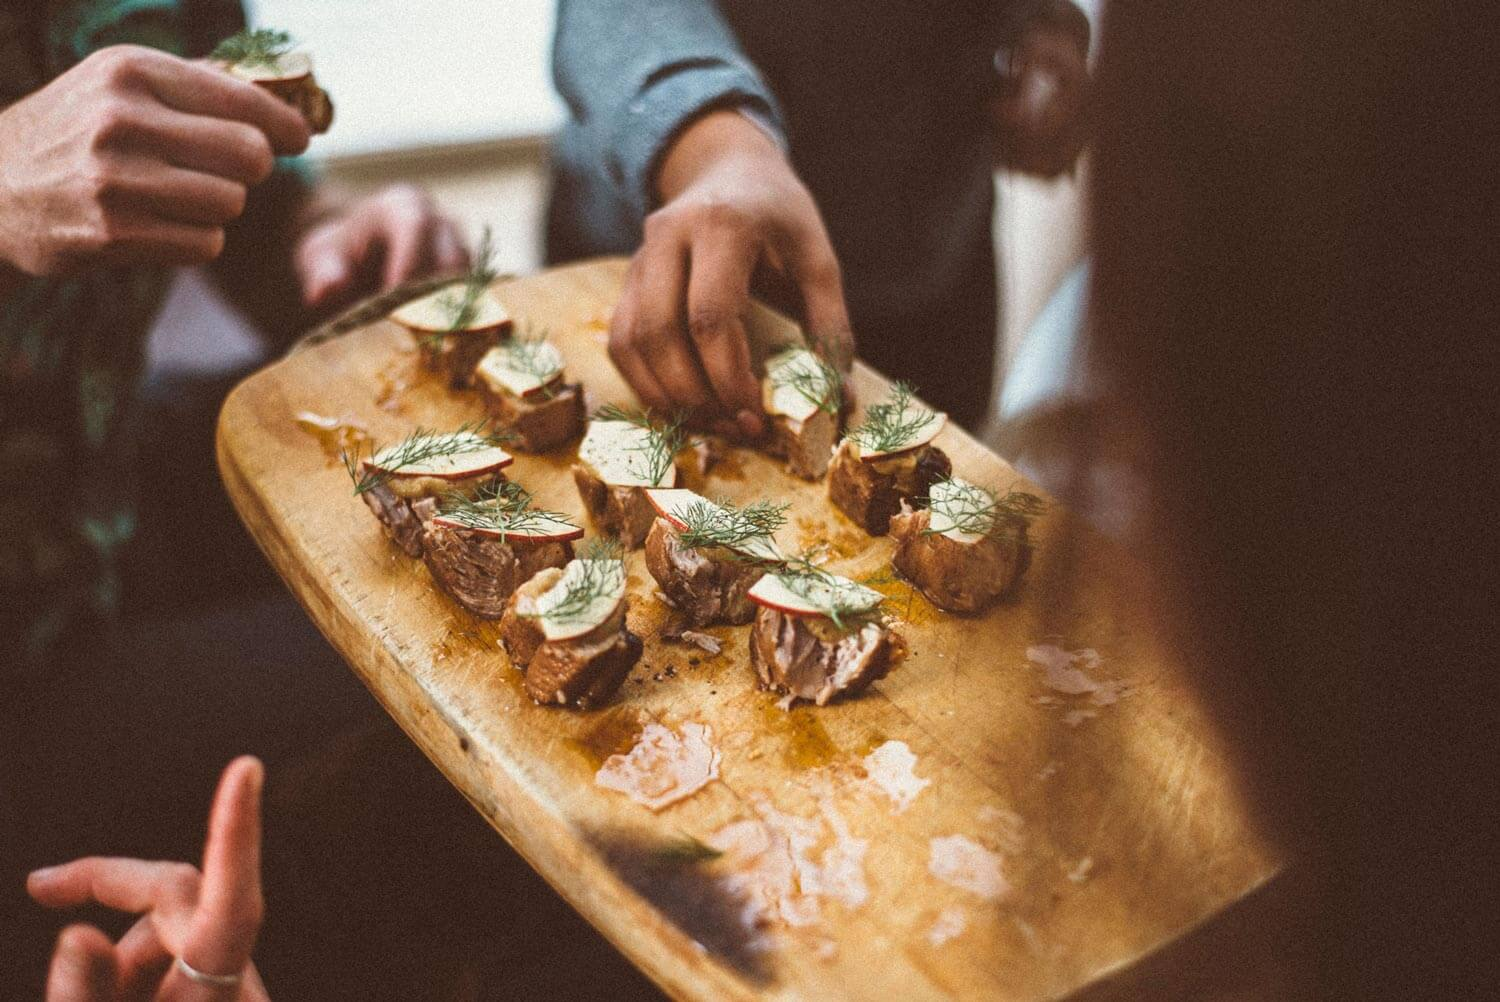 On-Board-Kitchen-Auckland-Caterer-Grazing-Bites-Pork-Belly-A.jpg